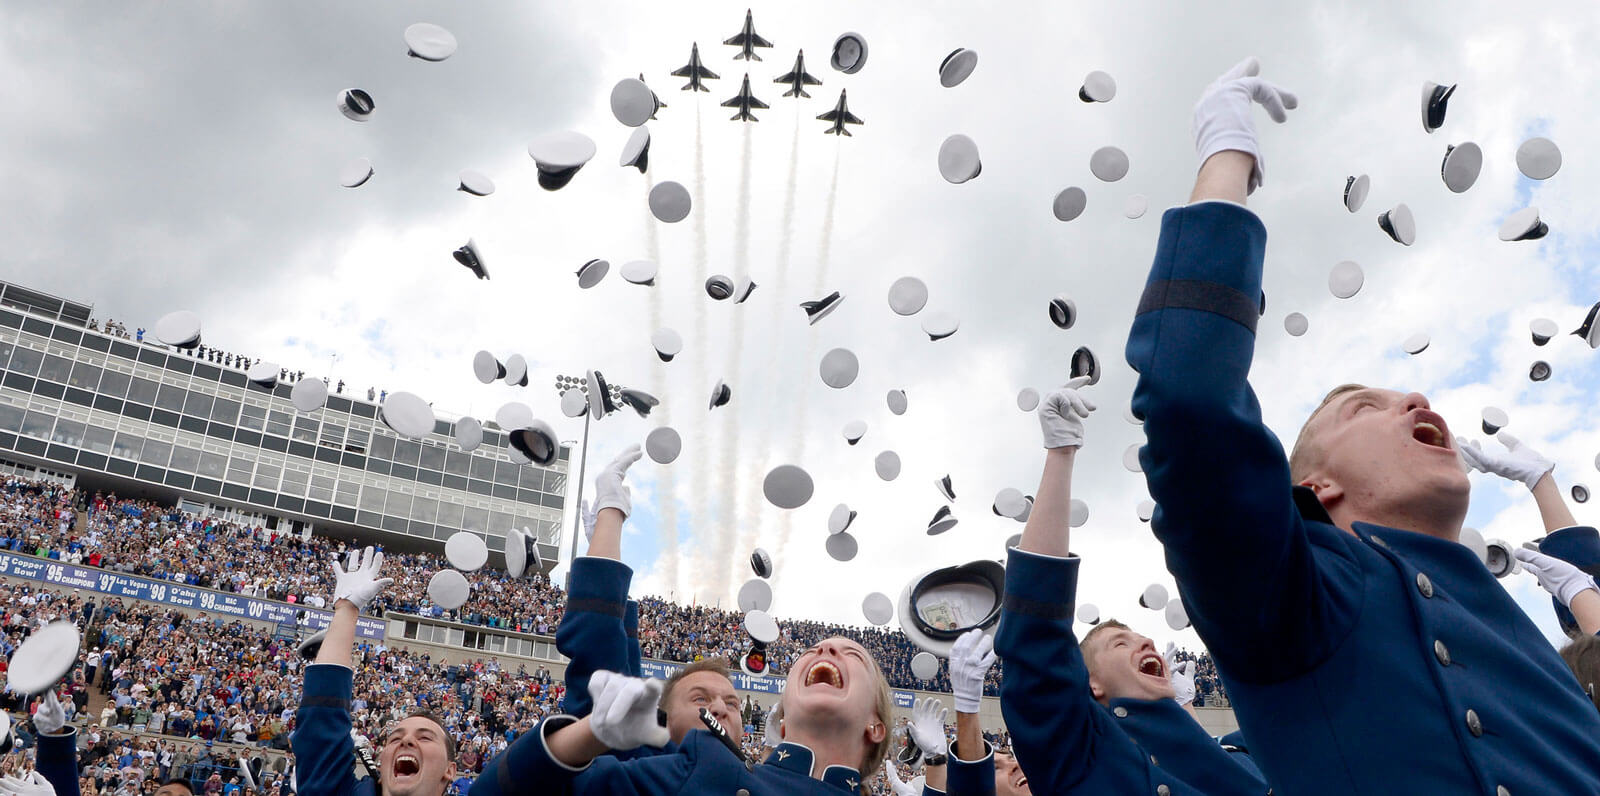 cadets throwing hats in air at graduation